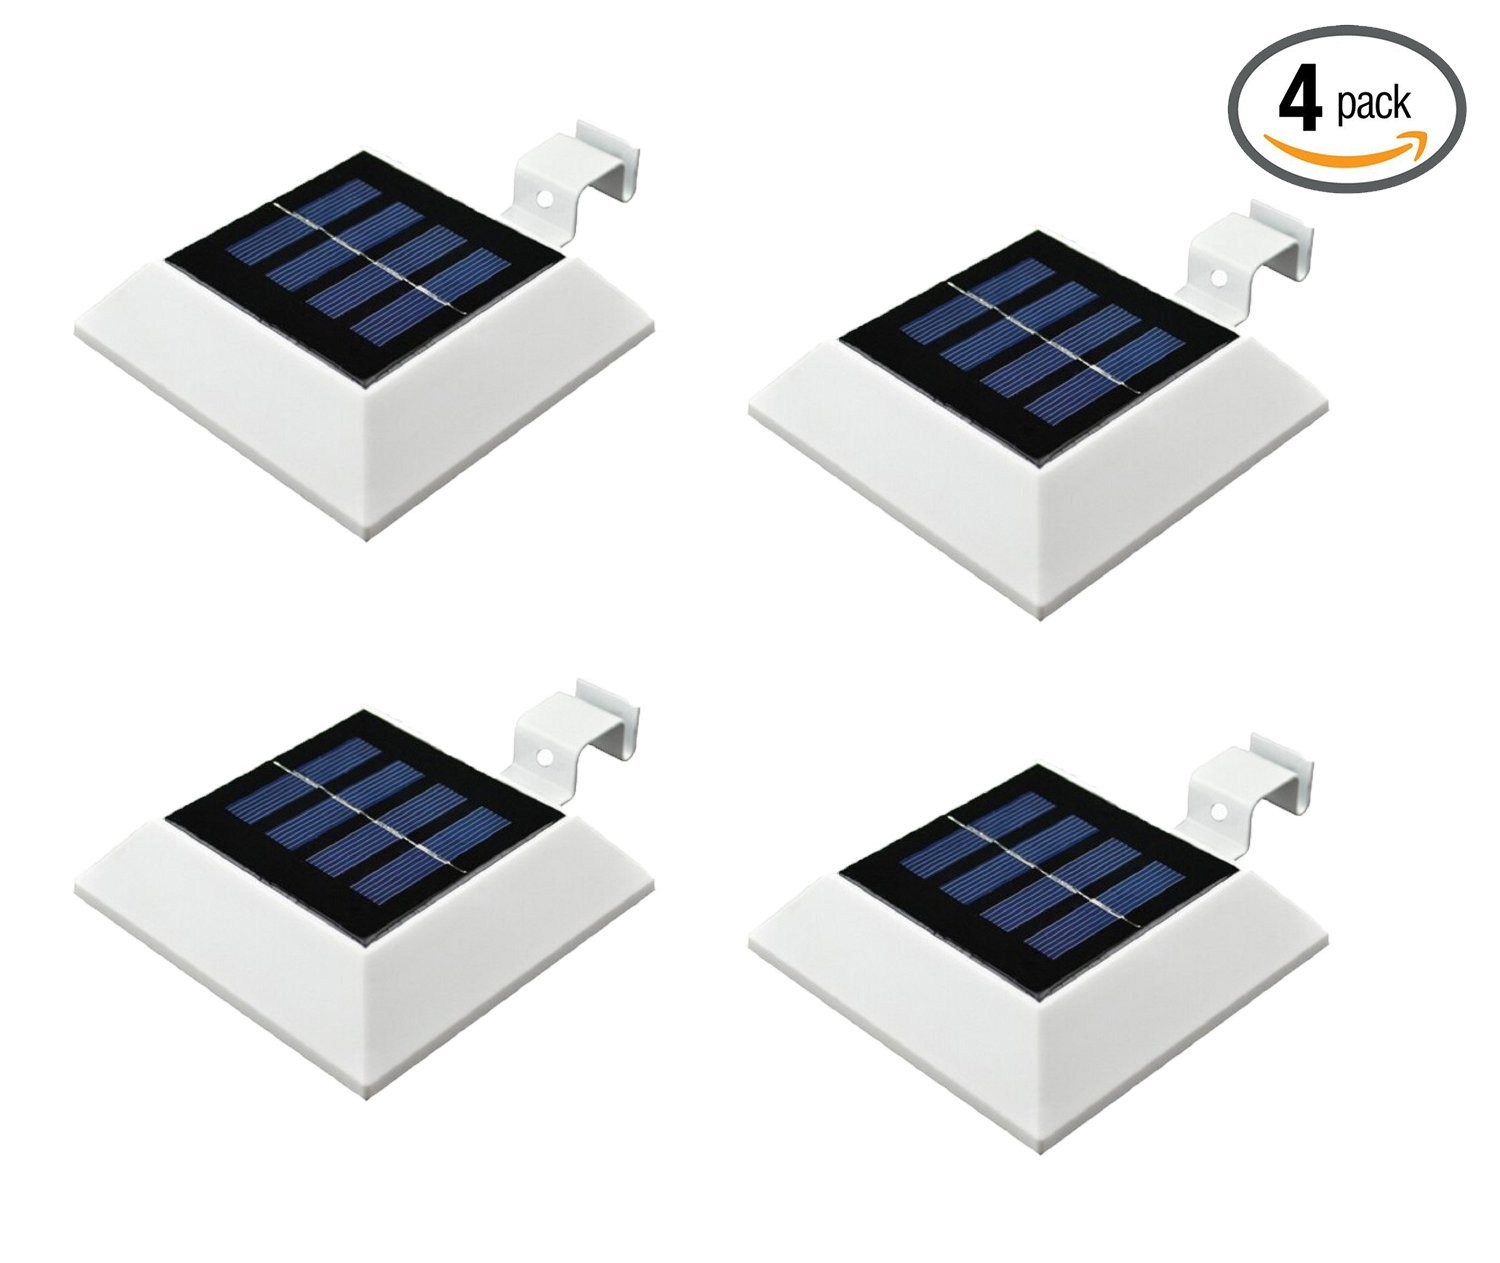 [4 Pack]HKYH Solar Powered Waterproof Security Lamp, 4 LED Solar Gutter Lights for Outdoor Garden, Fence, Dog House, Tree, Outside Garage Door, Wall, Stairs Anywhere Safety Lite with Bracket by HKYH